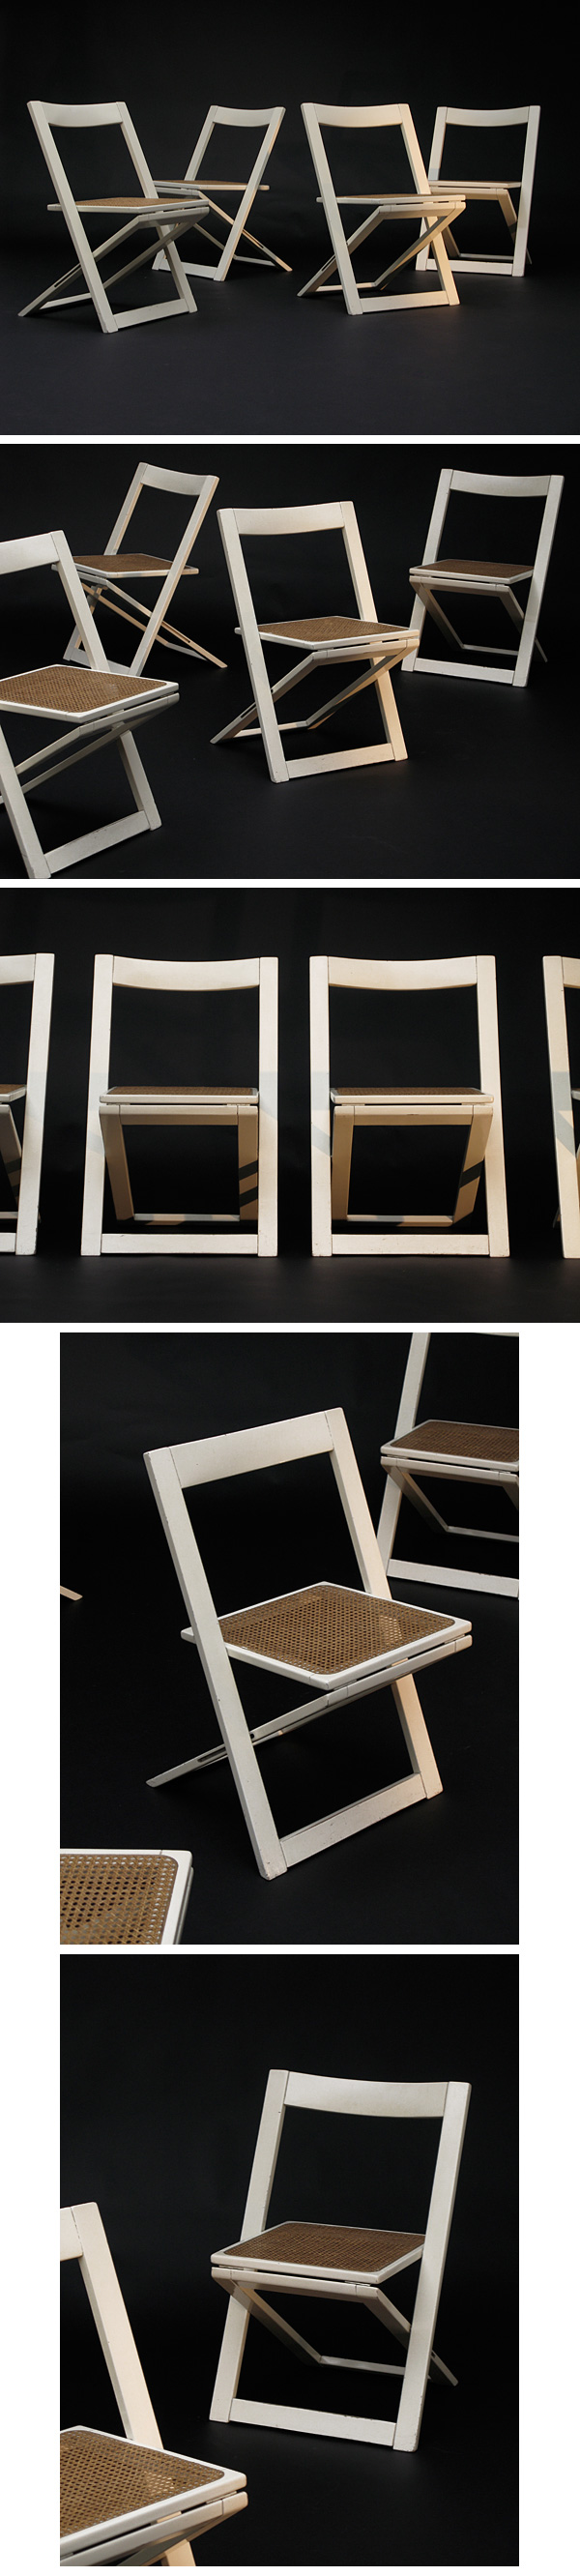 decorative, white, laquered, folding, chairs, 1970s, woody allen